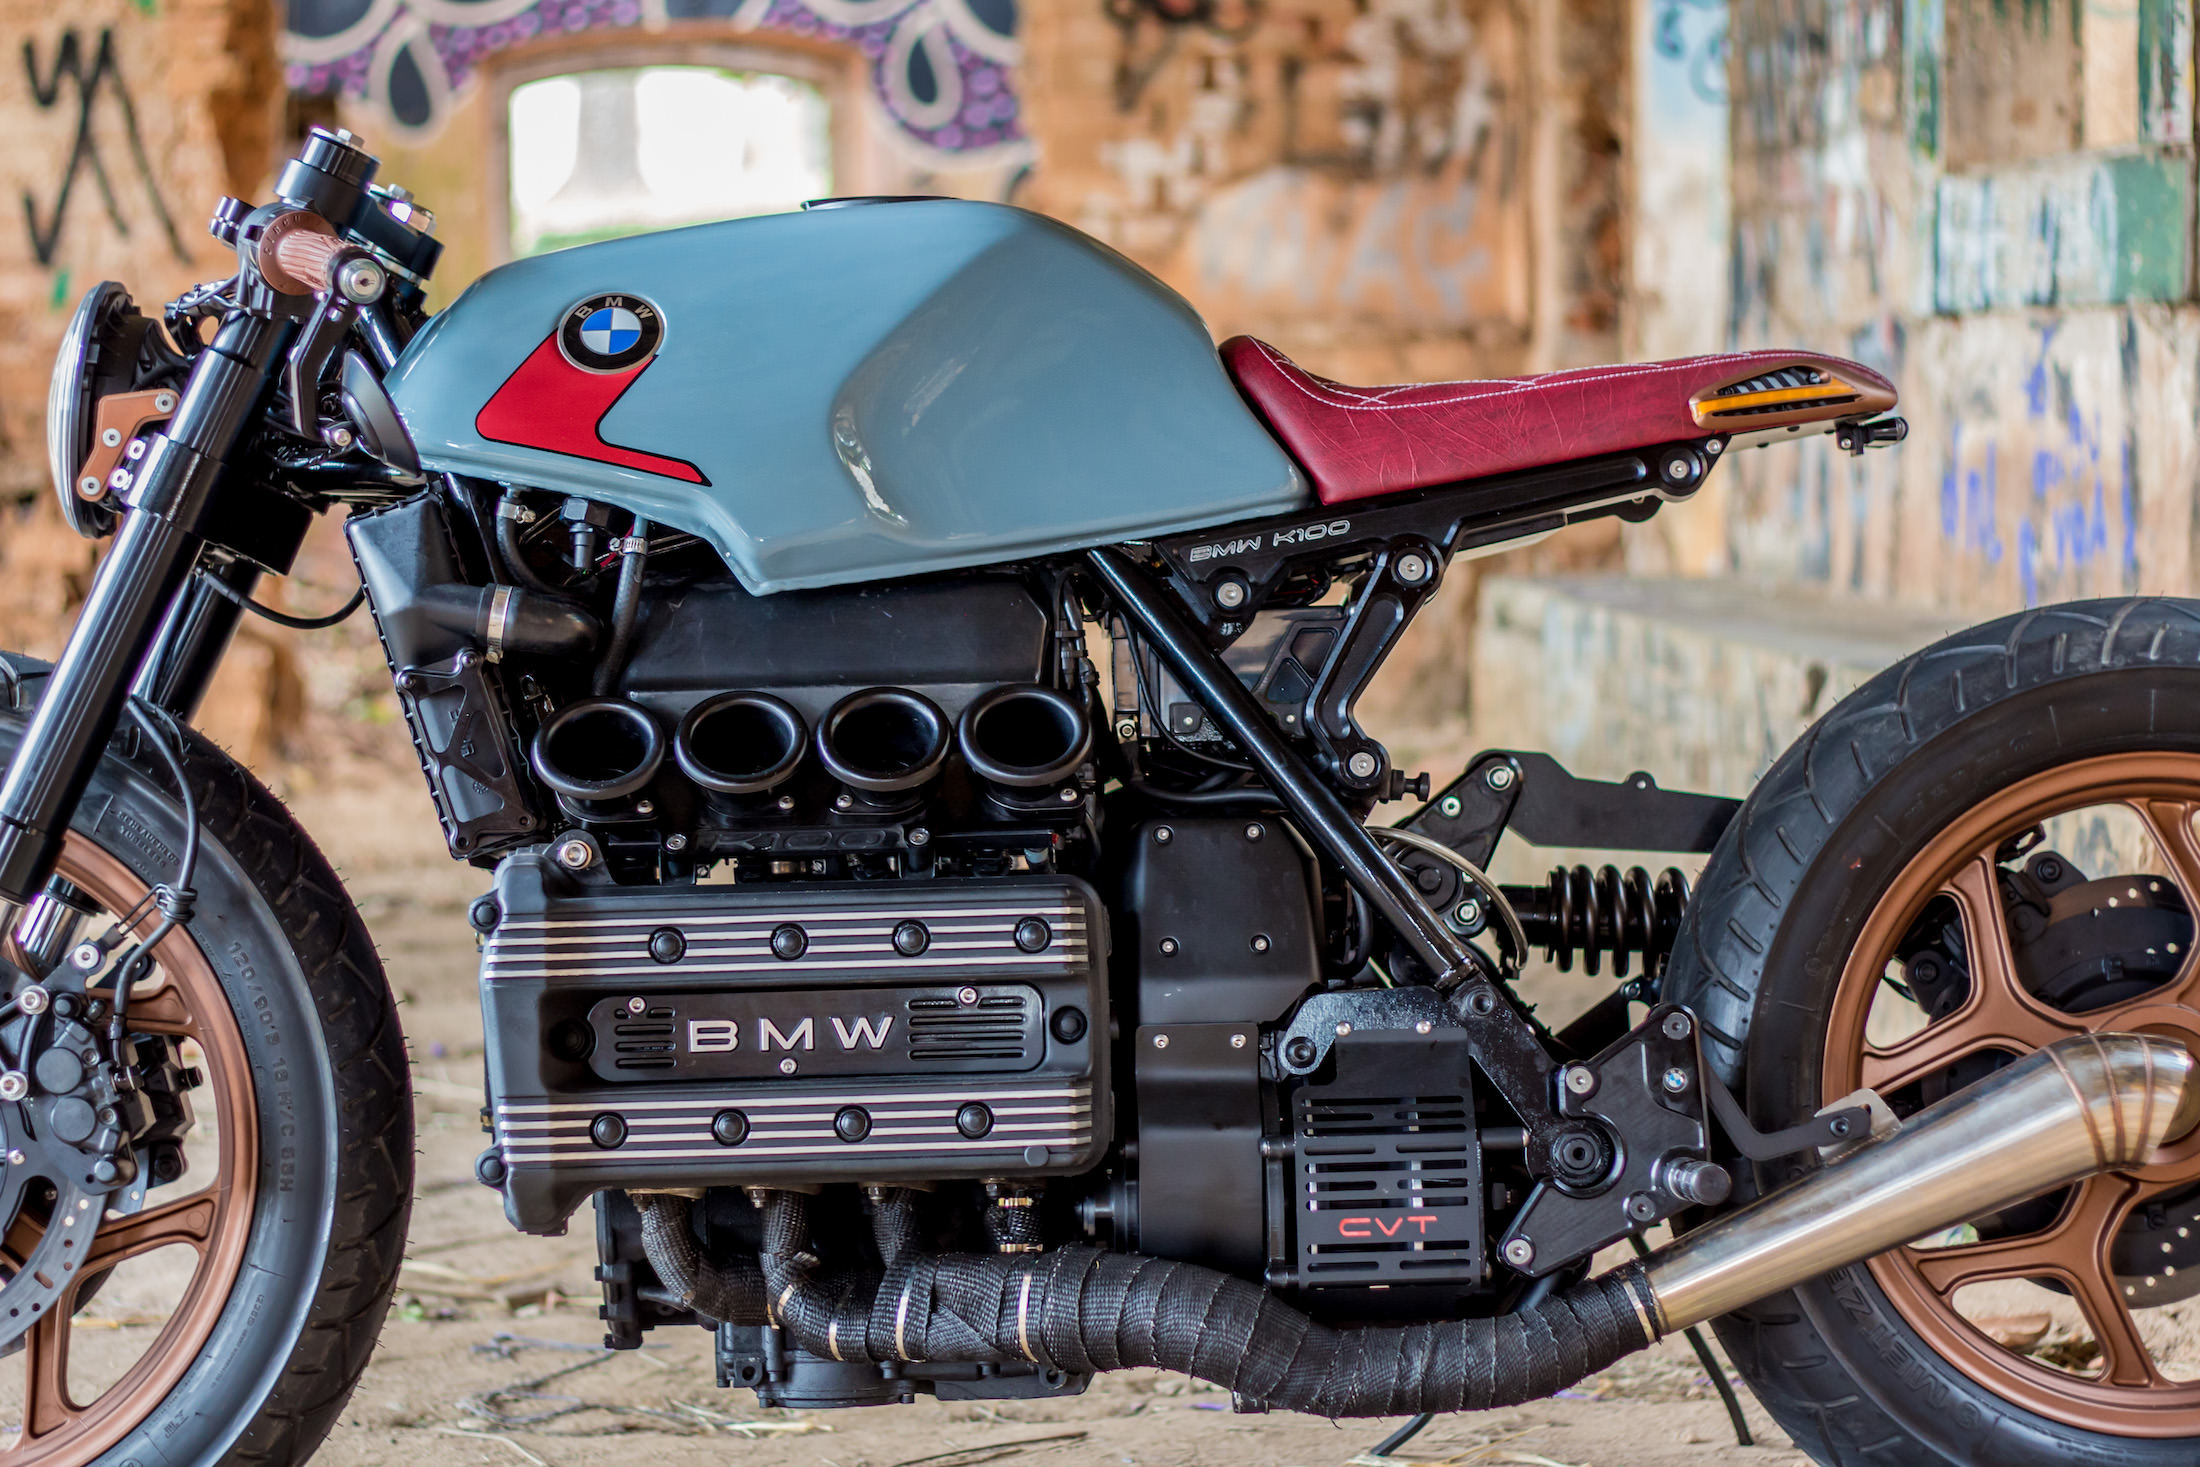 A Brazilian Bmw K100 Cafe Racer With A Cvt Transmission For Disabled Riders